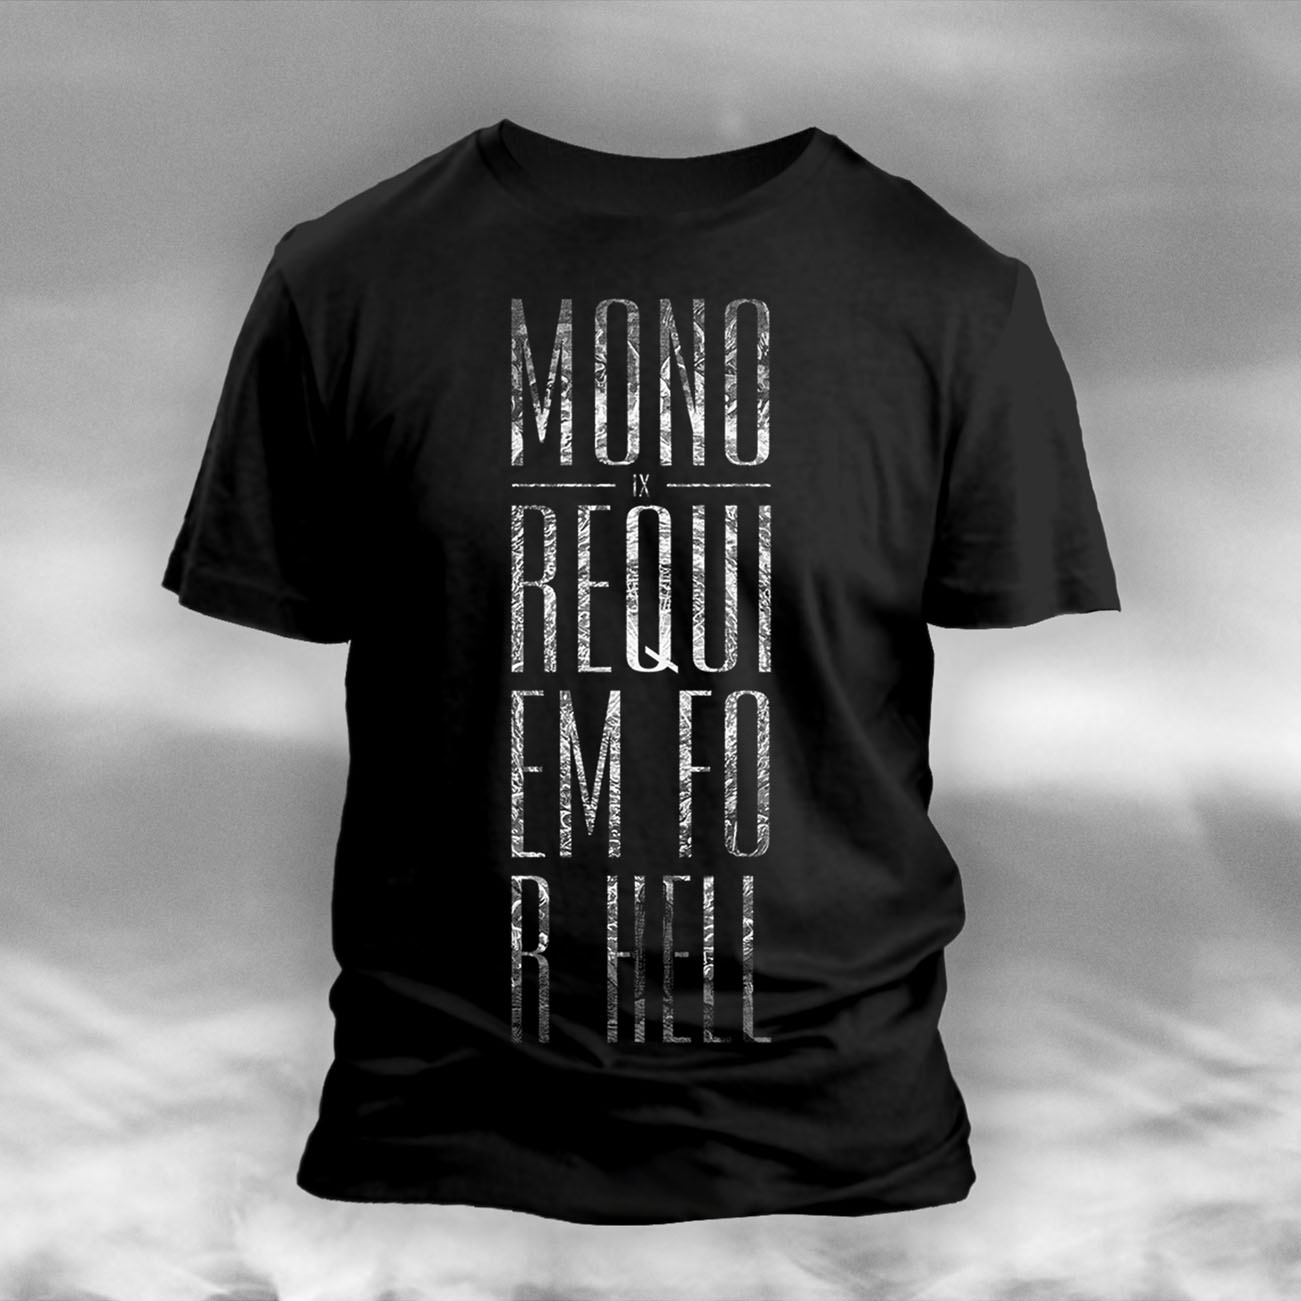 MONO - 'IX Requiem For Hell' Black T-Shirt - MONO